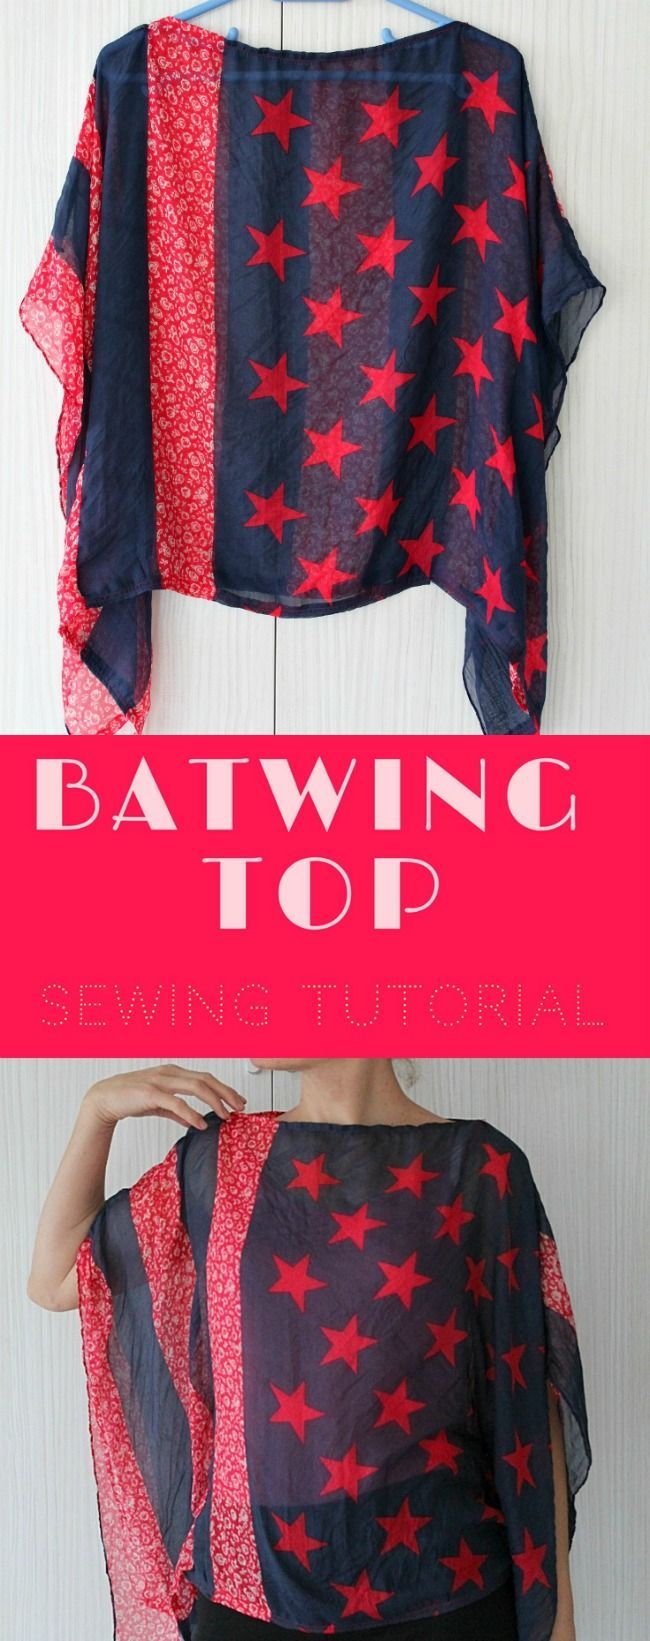 BATWING TOP SEWING TUTORIAL - Make yourself a flattering, comfortable top with this easy and quick Batwing Top Tutorial! All it takes is a nice scarf and a couple of stitches.   #batwingtop #batwing #sewing